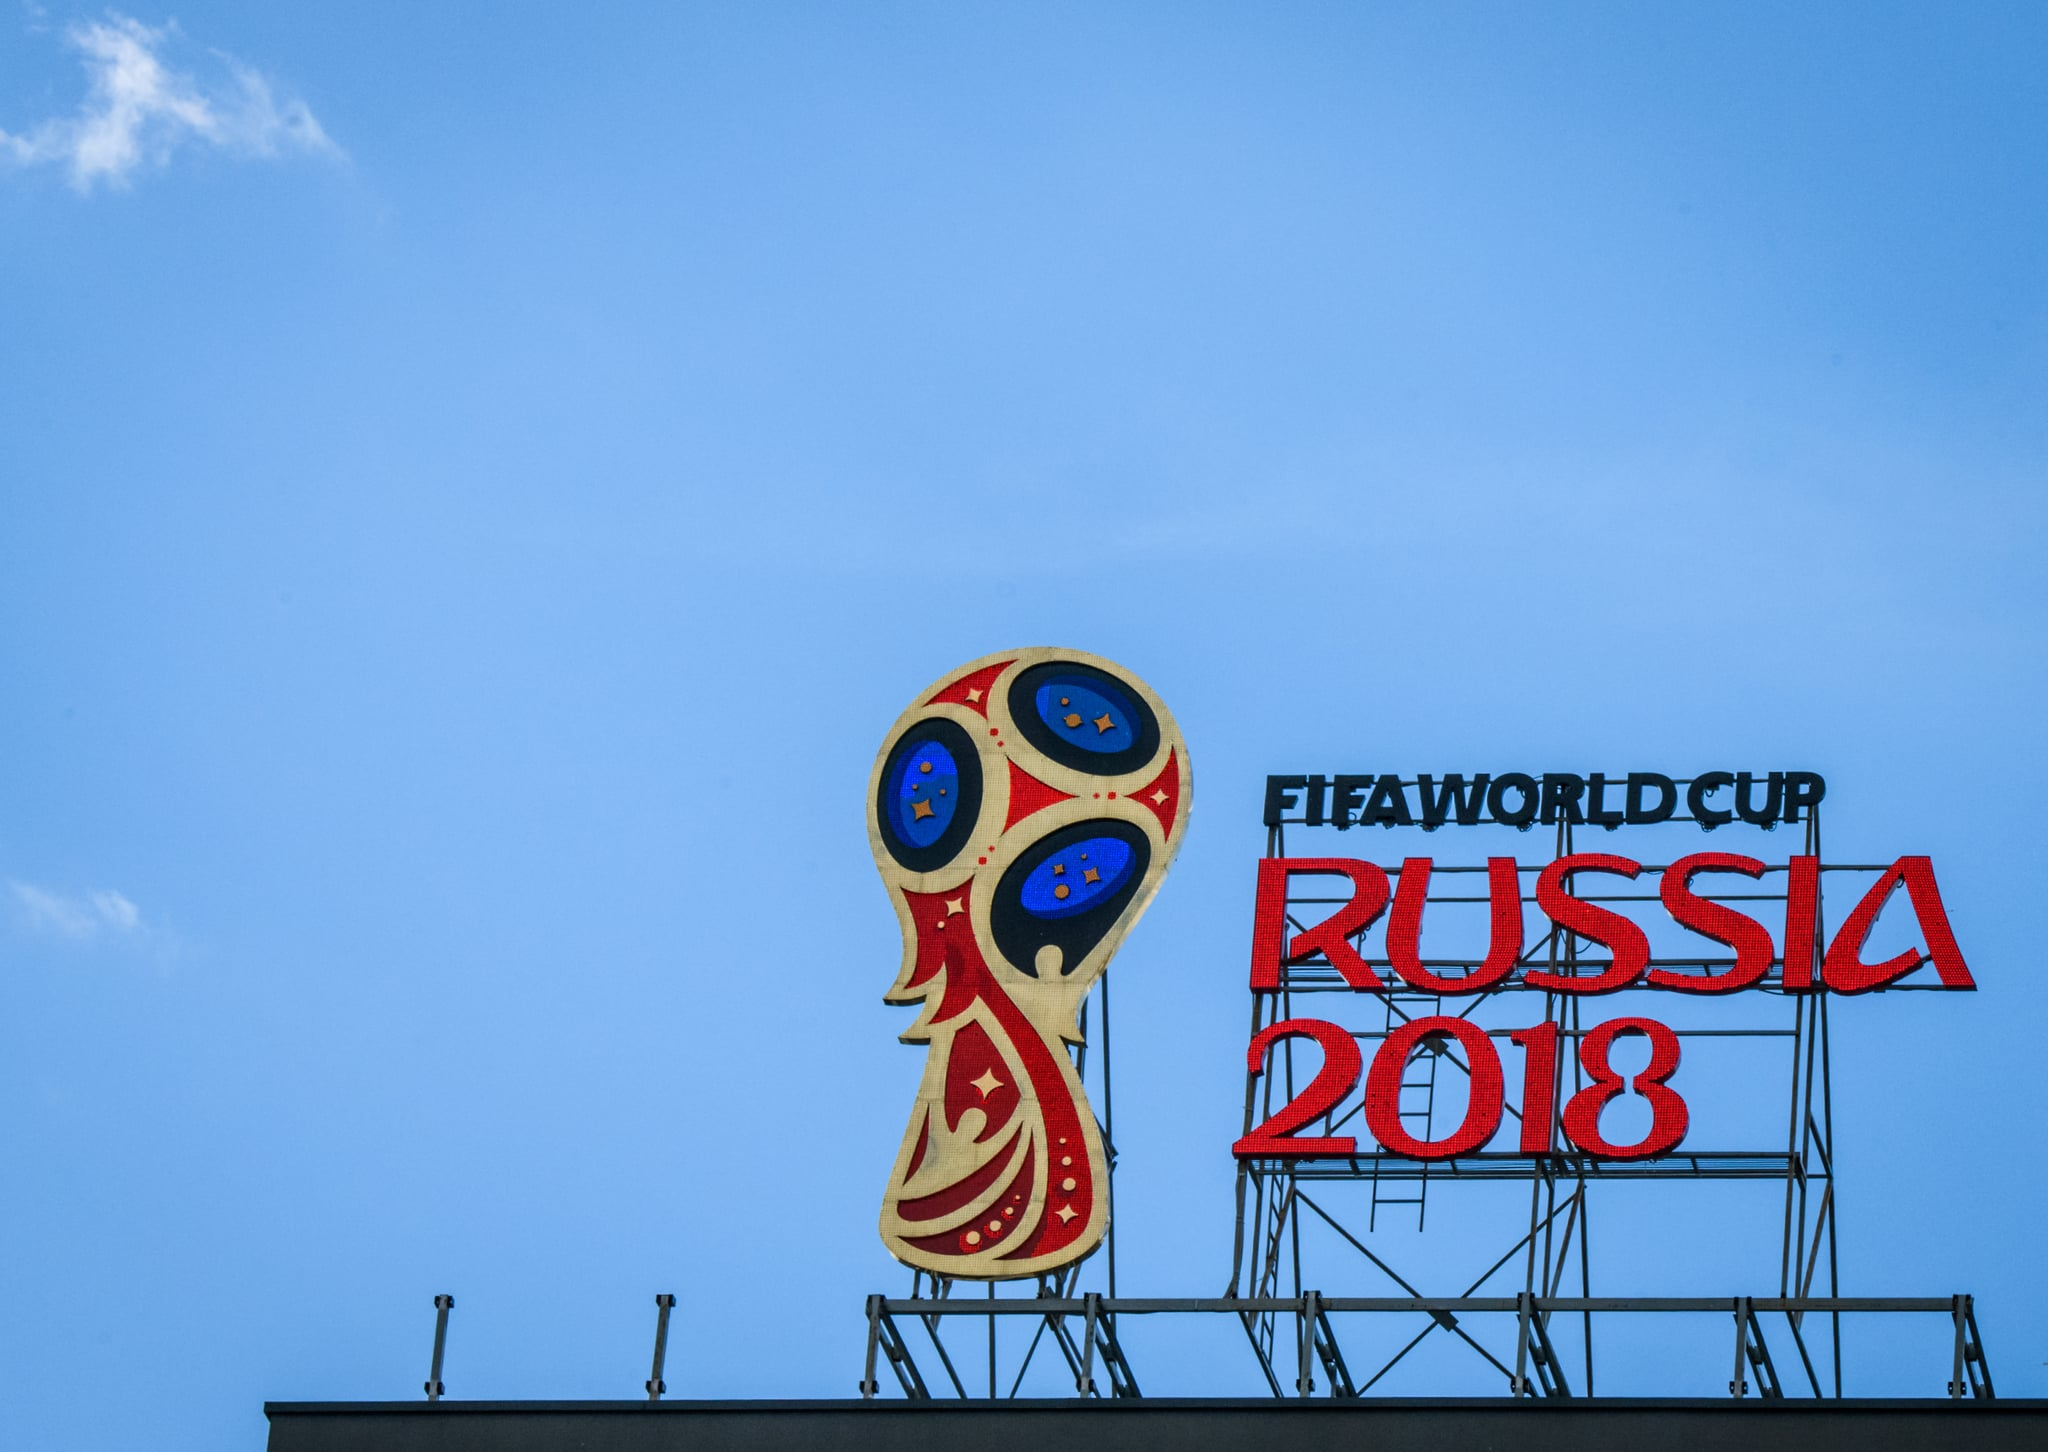 A picture taken on June 6, 2018 shows the 2018 FIFA World Cup logo on top of a building in Moscow. (Photo by Mladen ANTONOV / AFP)        (Photo credit should read MLADEN ANTONOV/AFP/Getty Images)